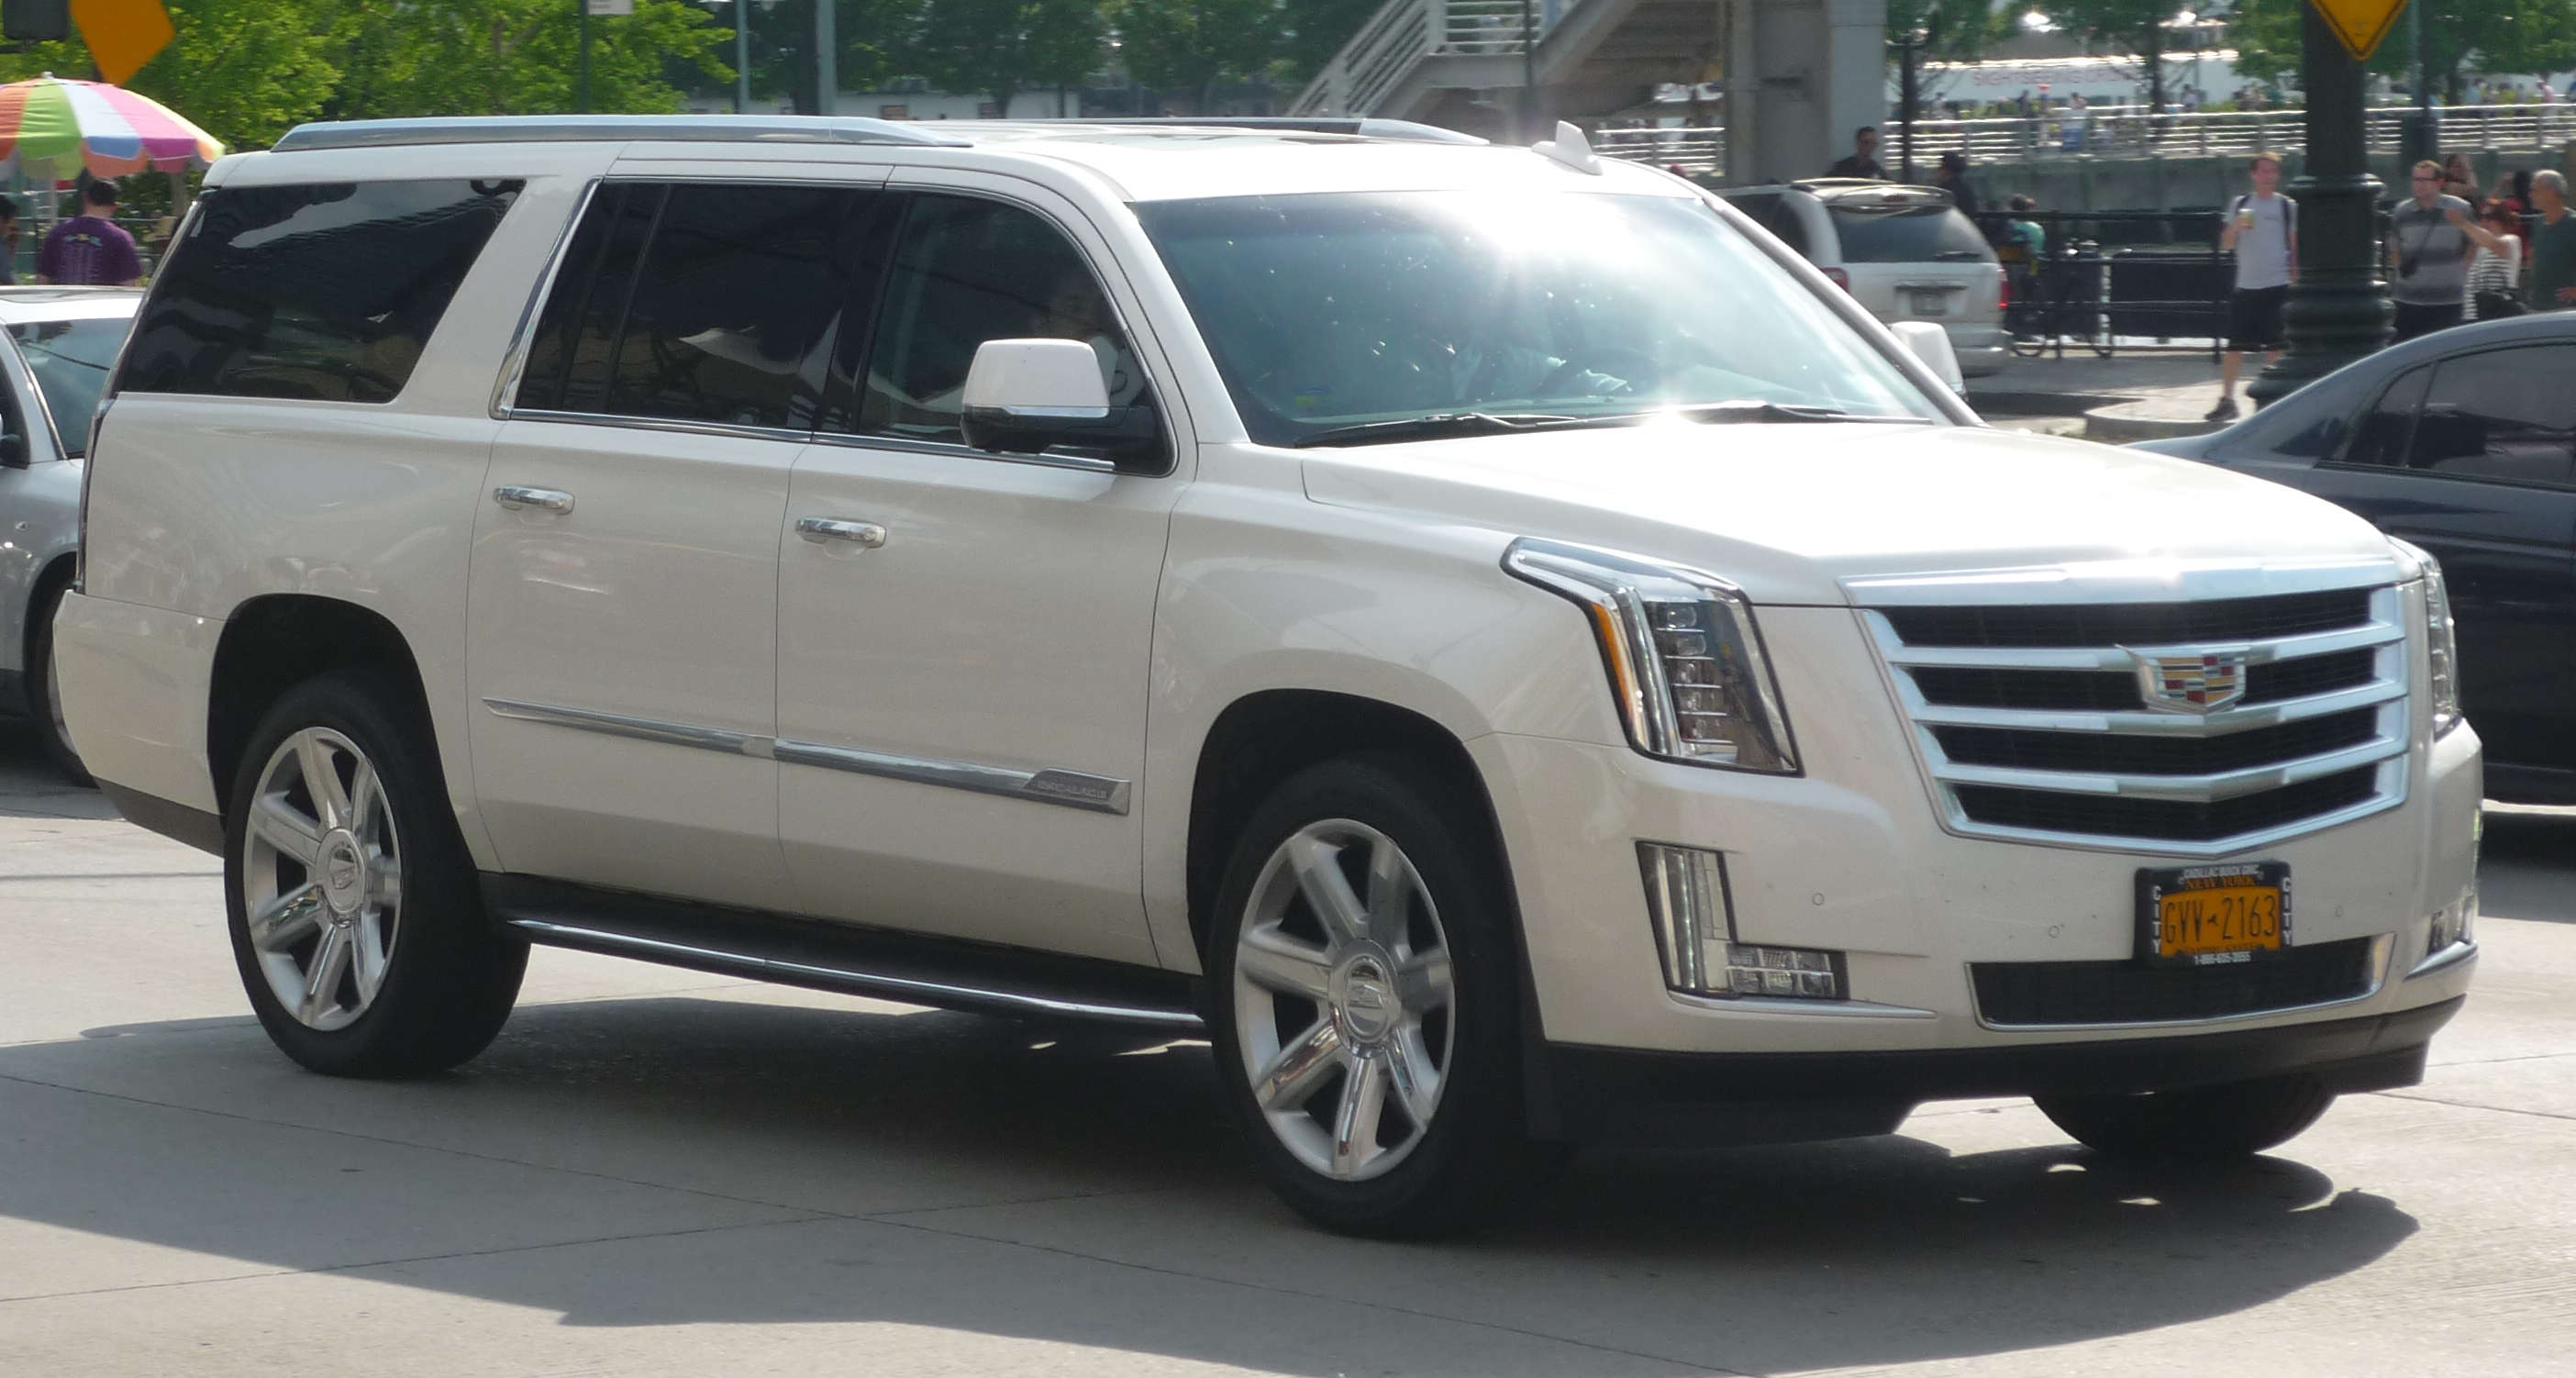 The South Korean tech firm said its plastic OLED-based digital cockpit system will be installed in the new 2021 Cadillac Escalade SUV.